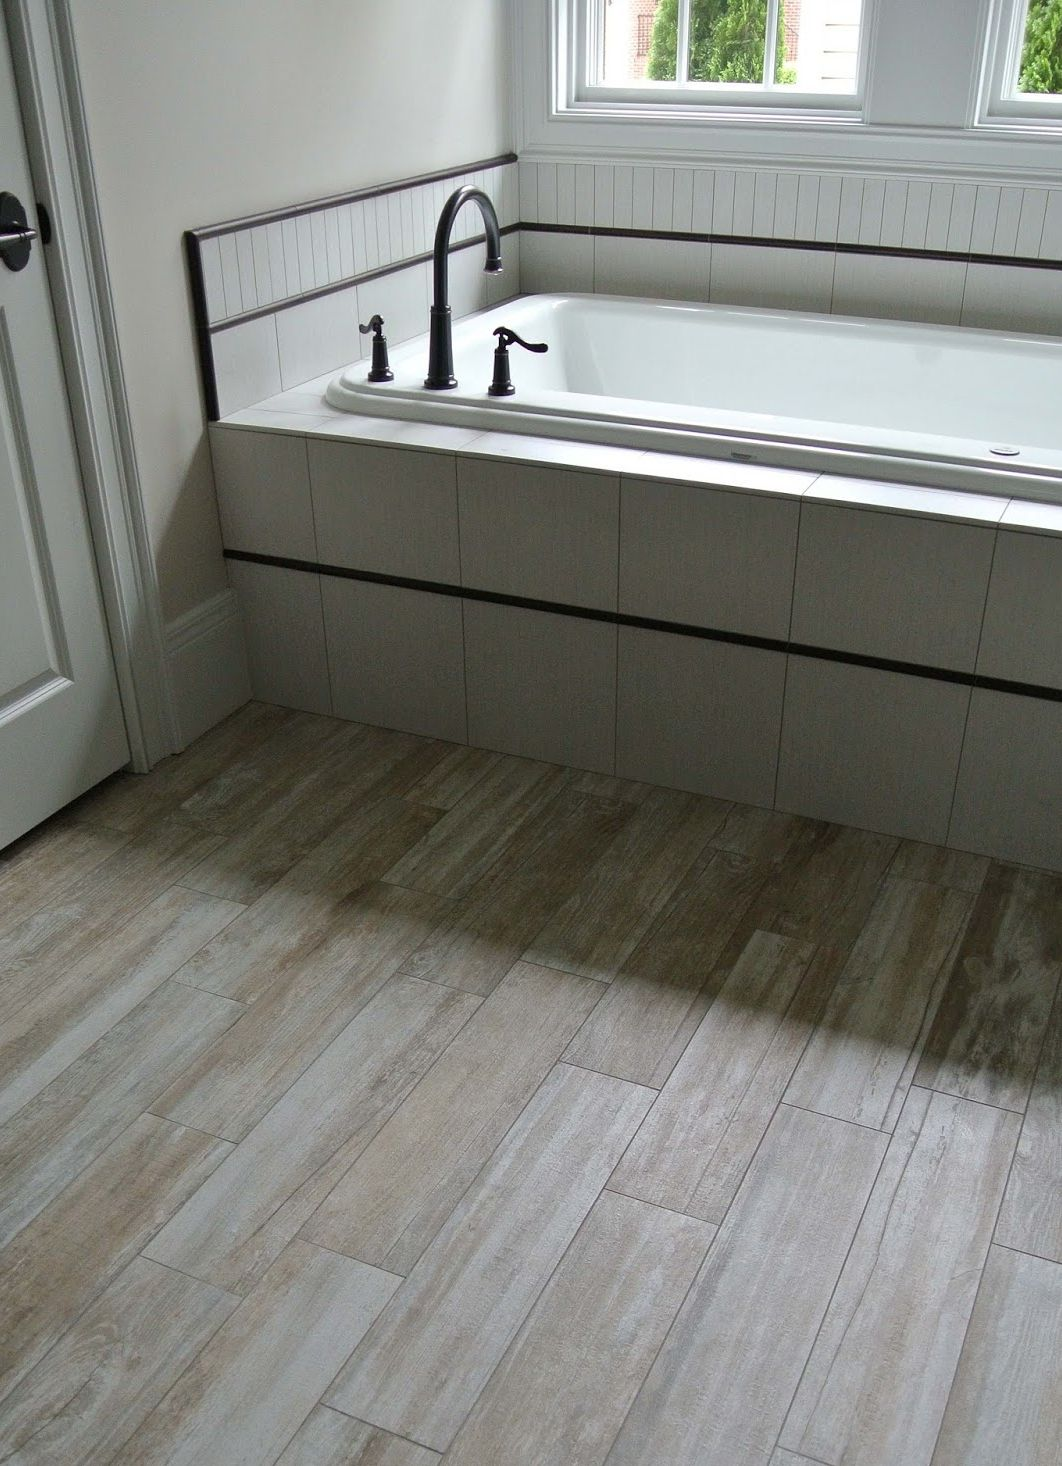 Bathroom Flooring Options: 30 Magnificent Ideas And Pictures Decorative Bathroom